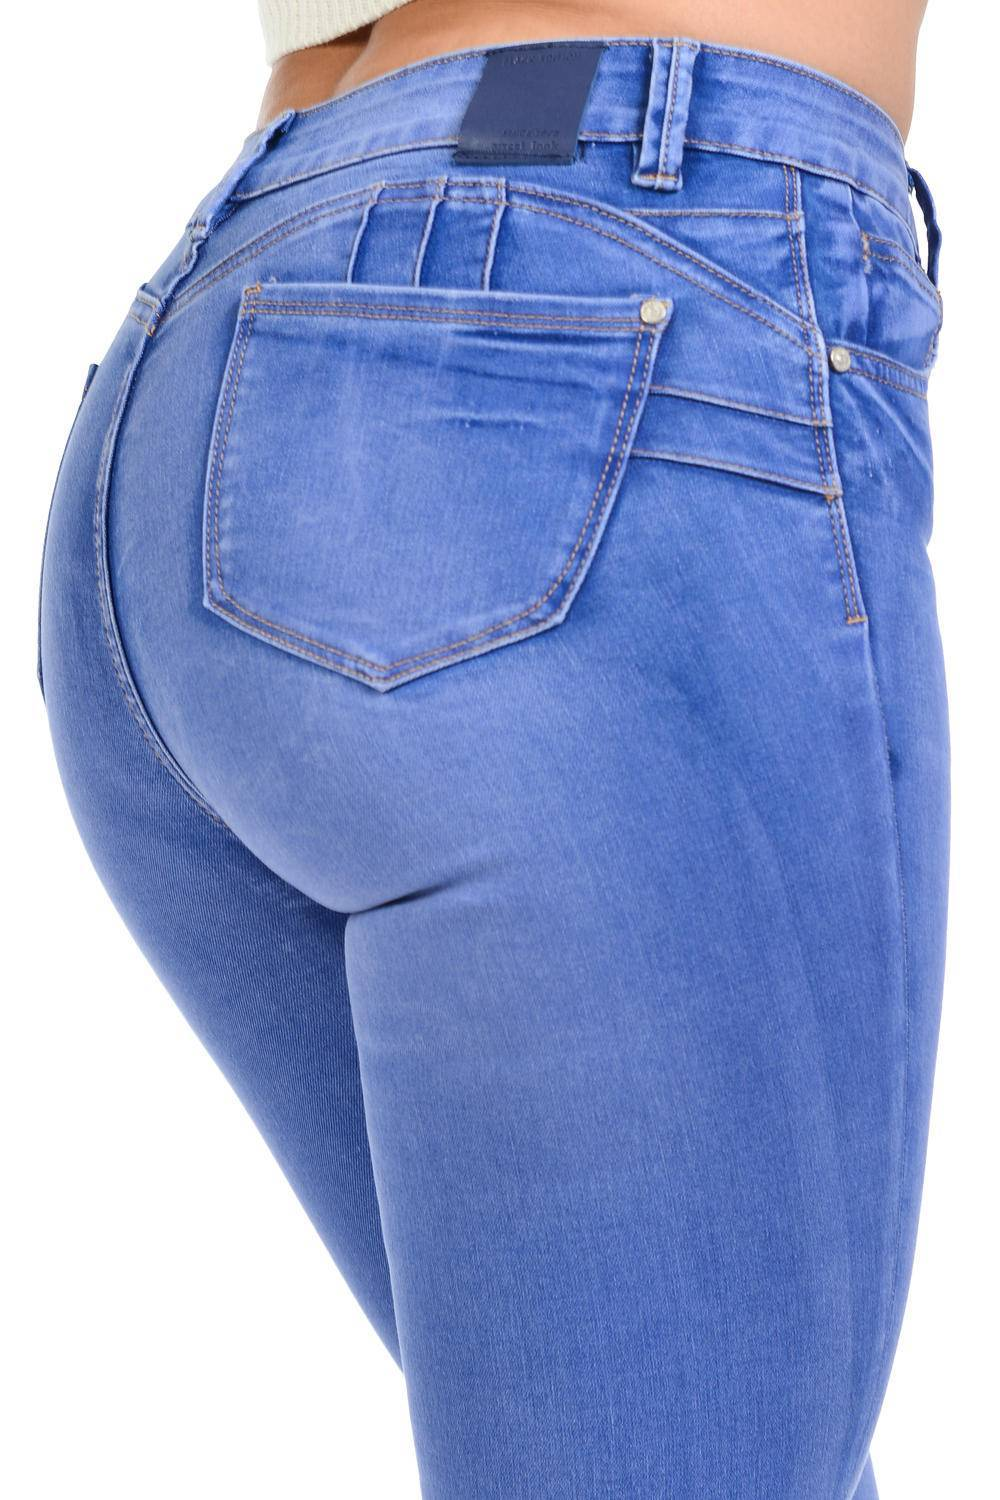 newest 383f6 12861 Sweet Look Black Edition Women's Jeans · Push Up · High Waist · Style A282